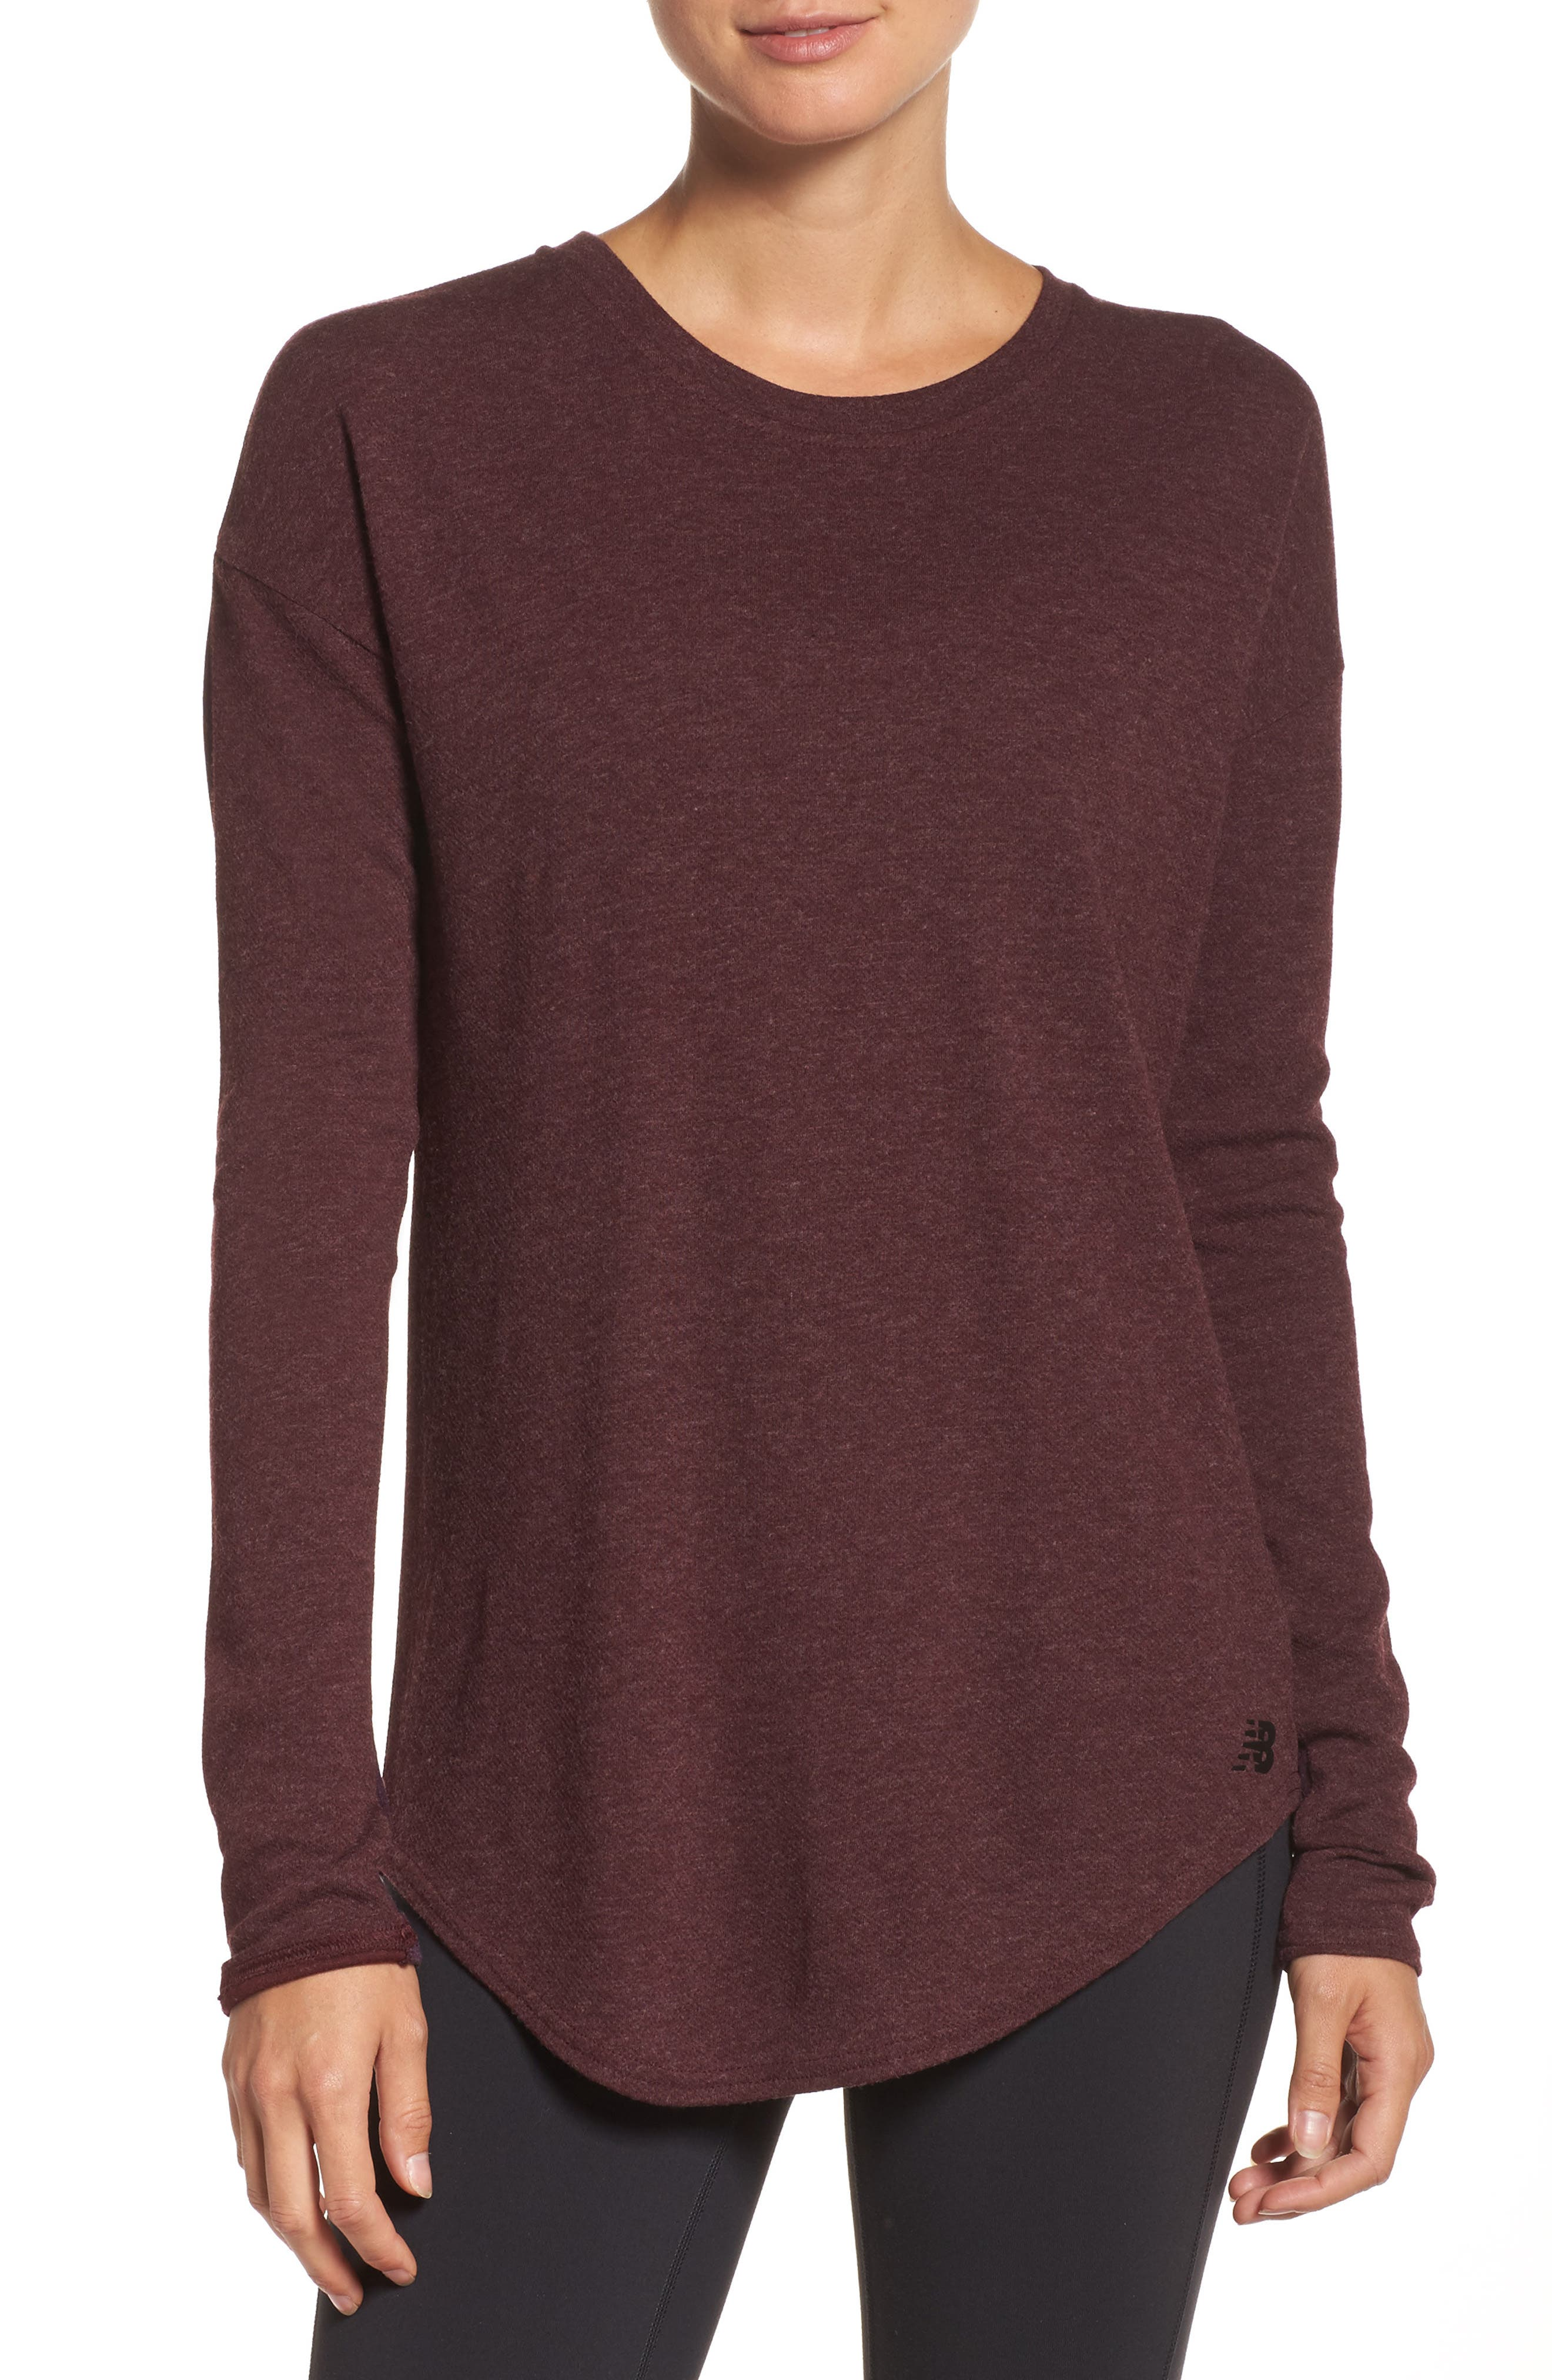 Main Image - New Balance 247 Luxe Long Sleeve Tee